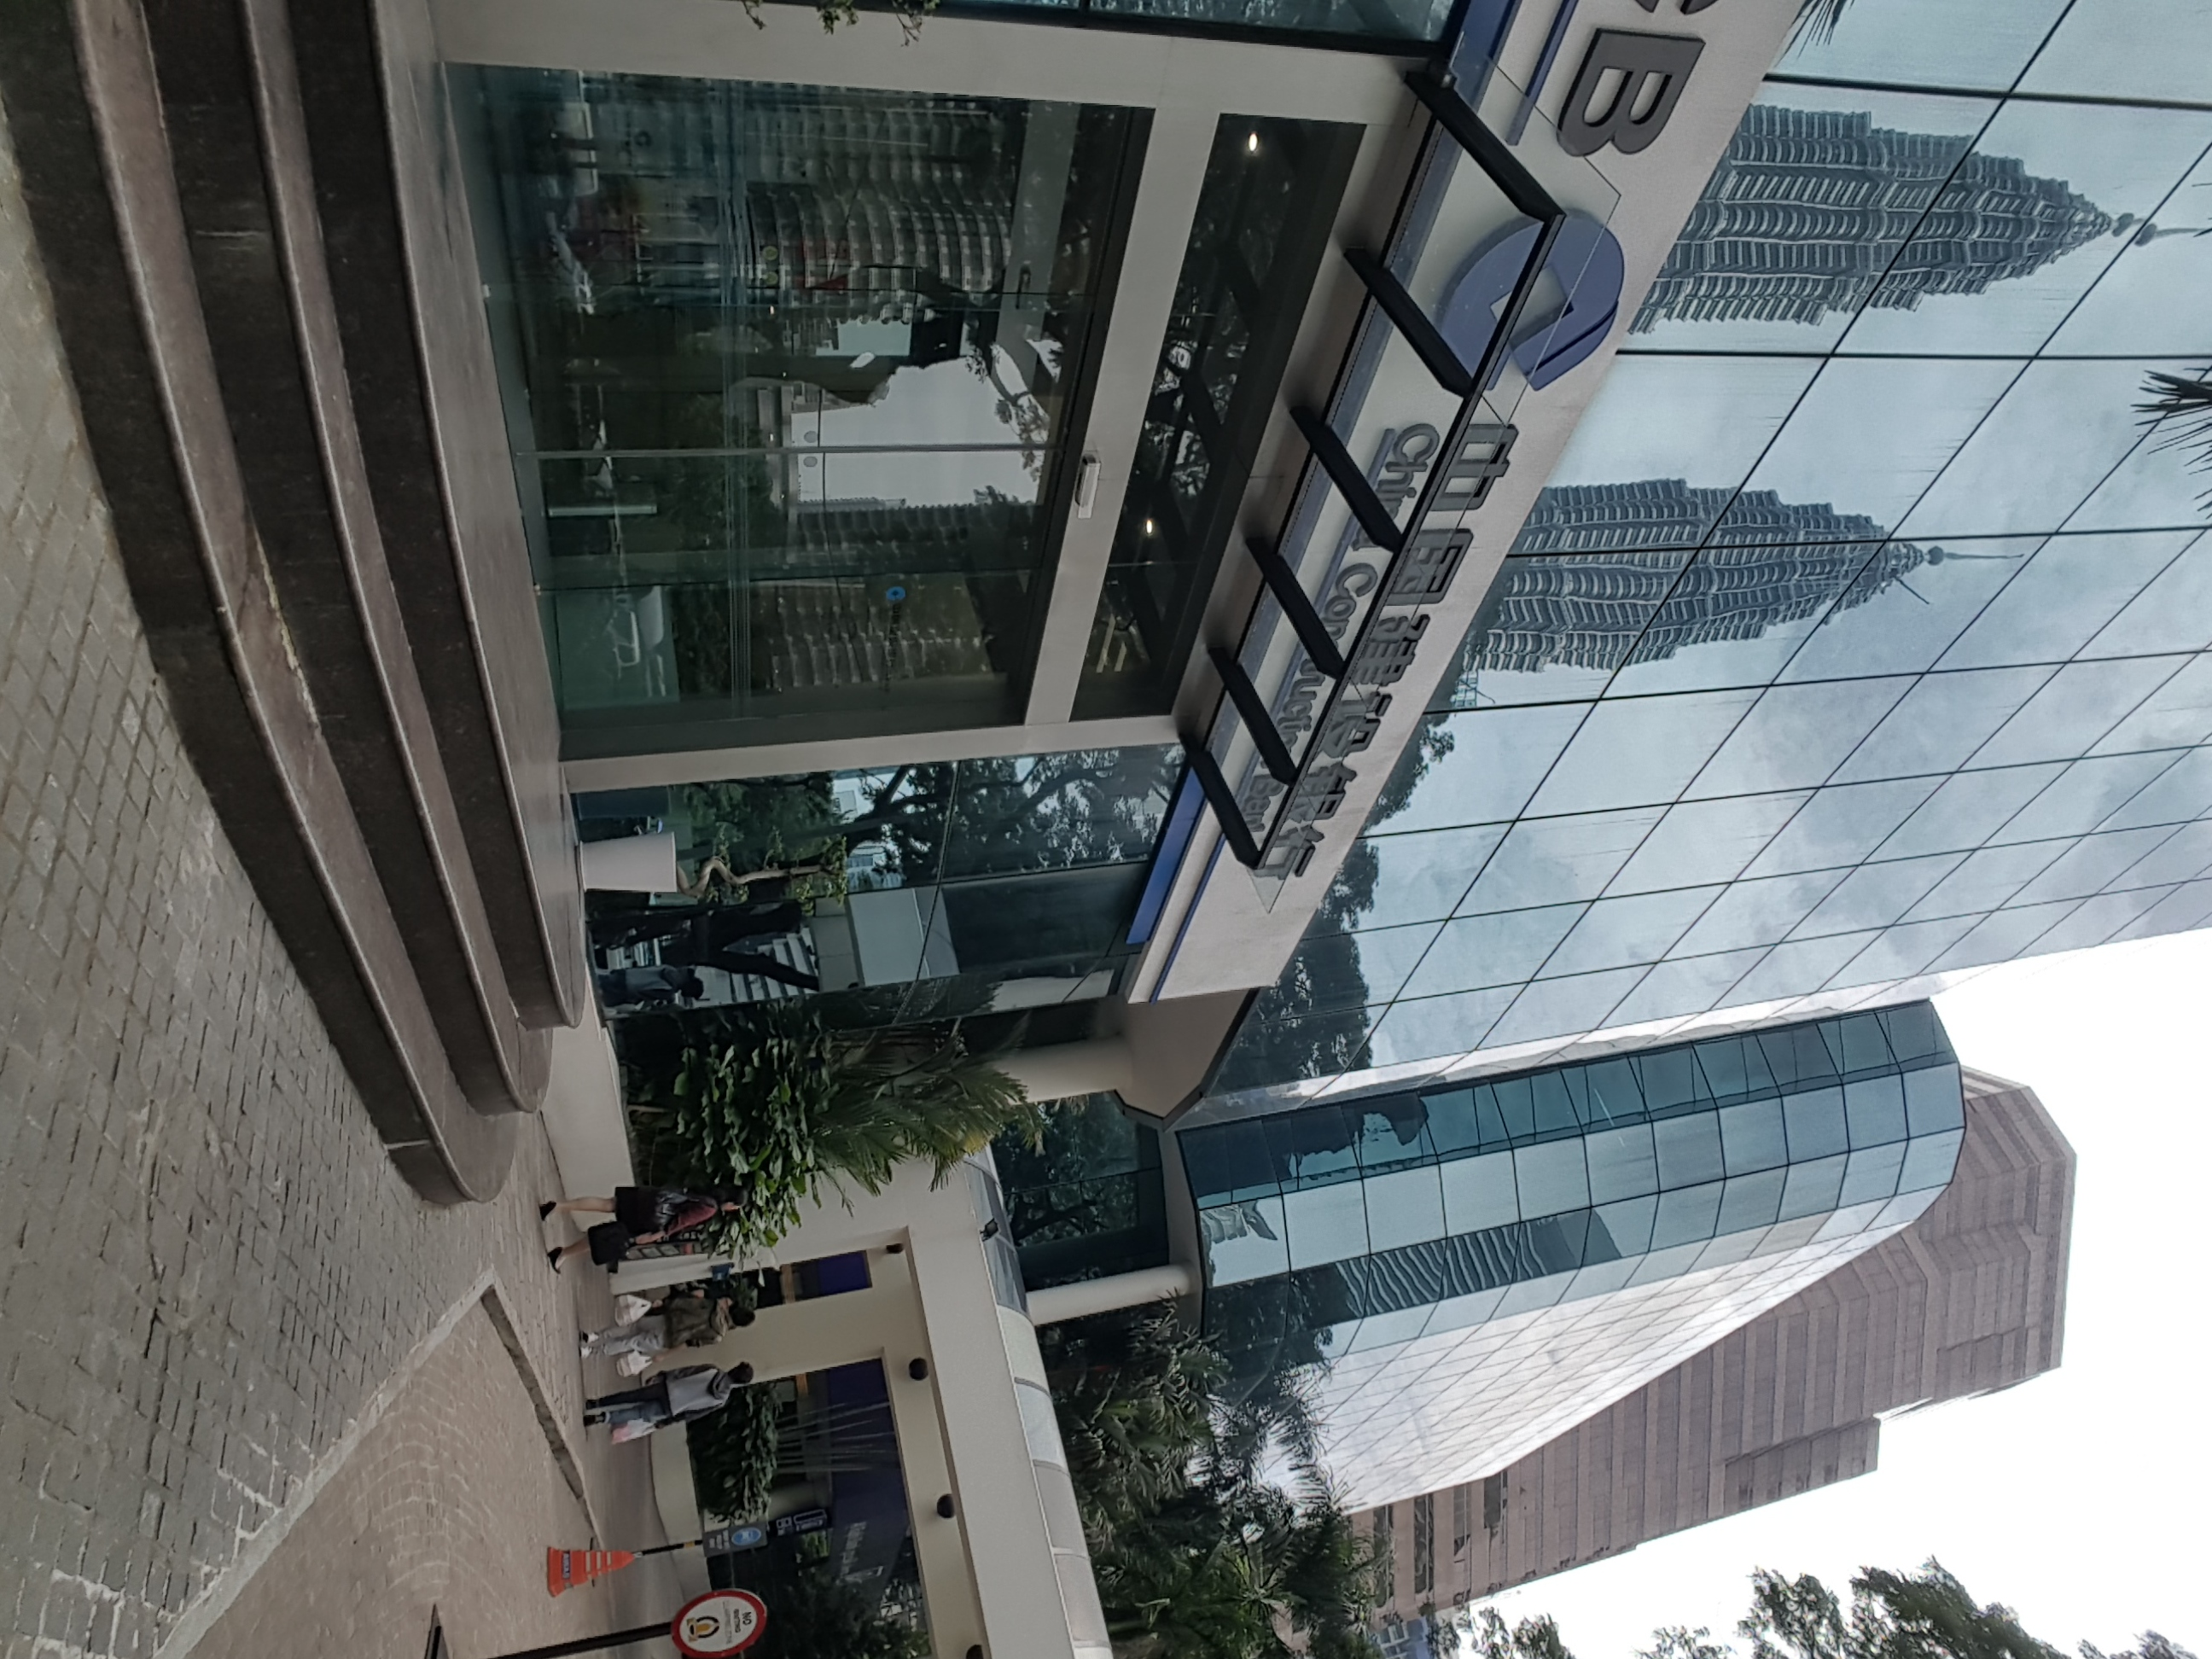 Wisma Golden Eagle Realty Klcc Kl City Kuala Lumpur 8400 Sqft Retails S Offices By Lawrence Shee Rm 54 600 Mo 7019483